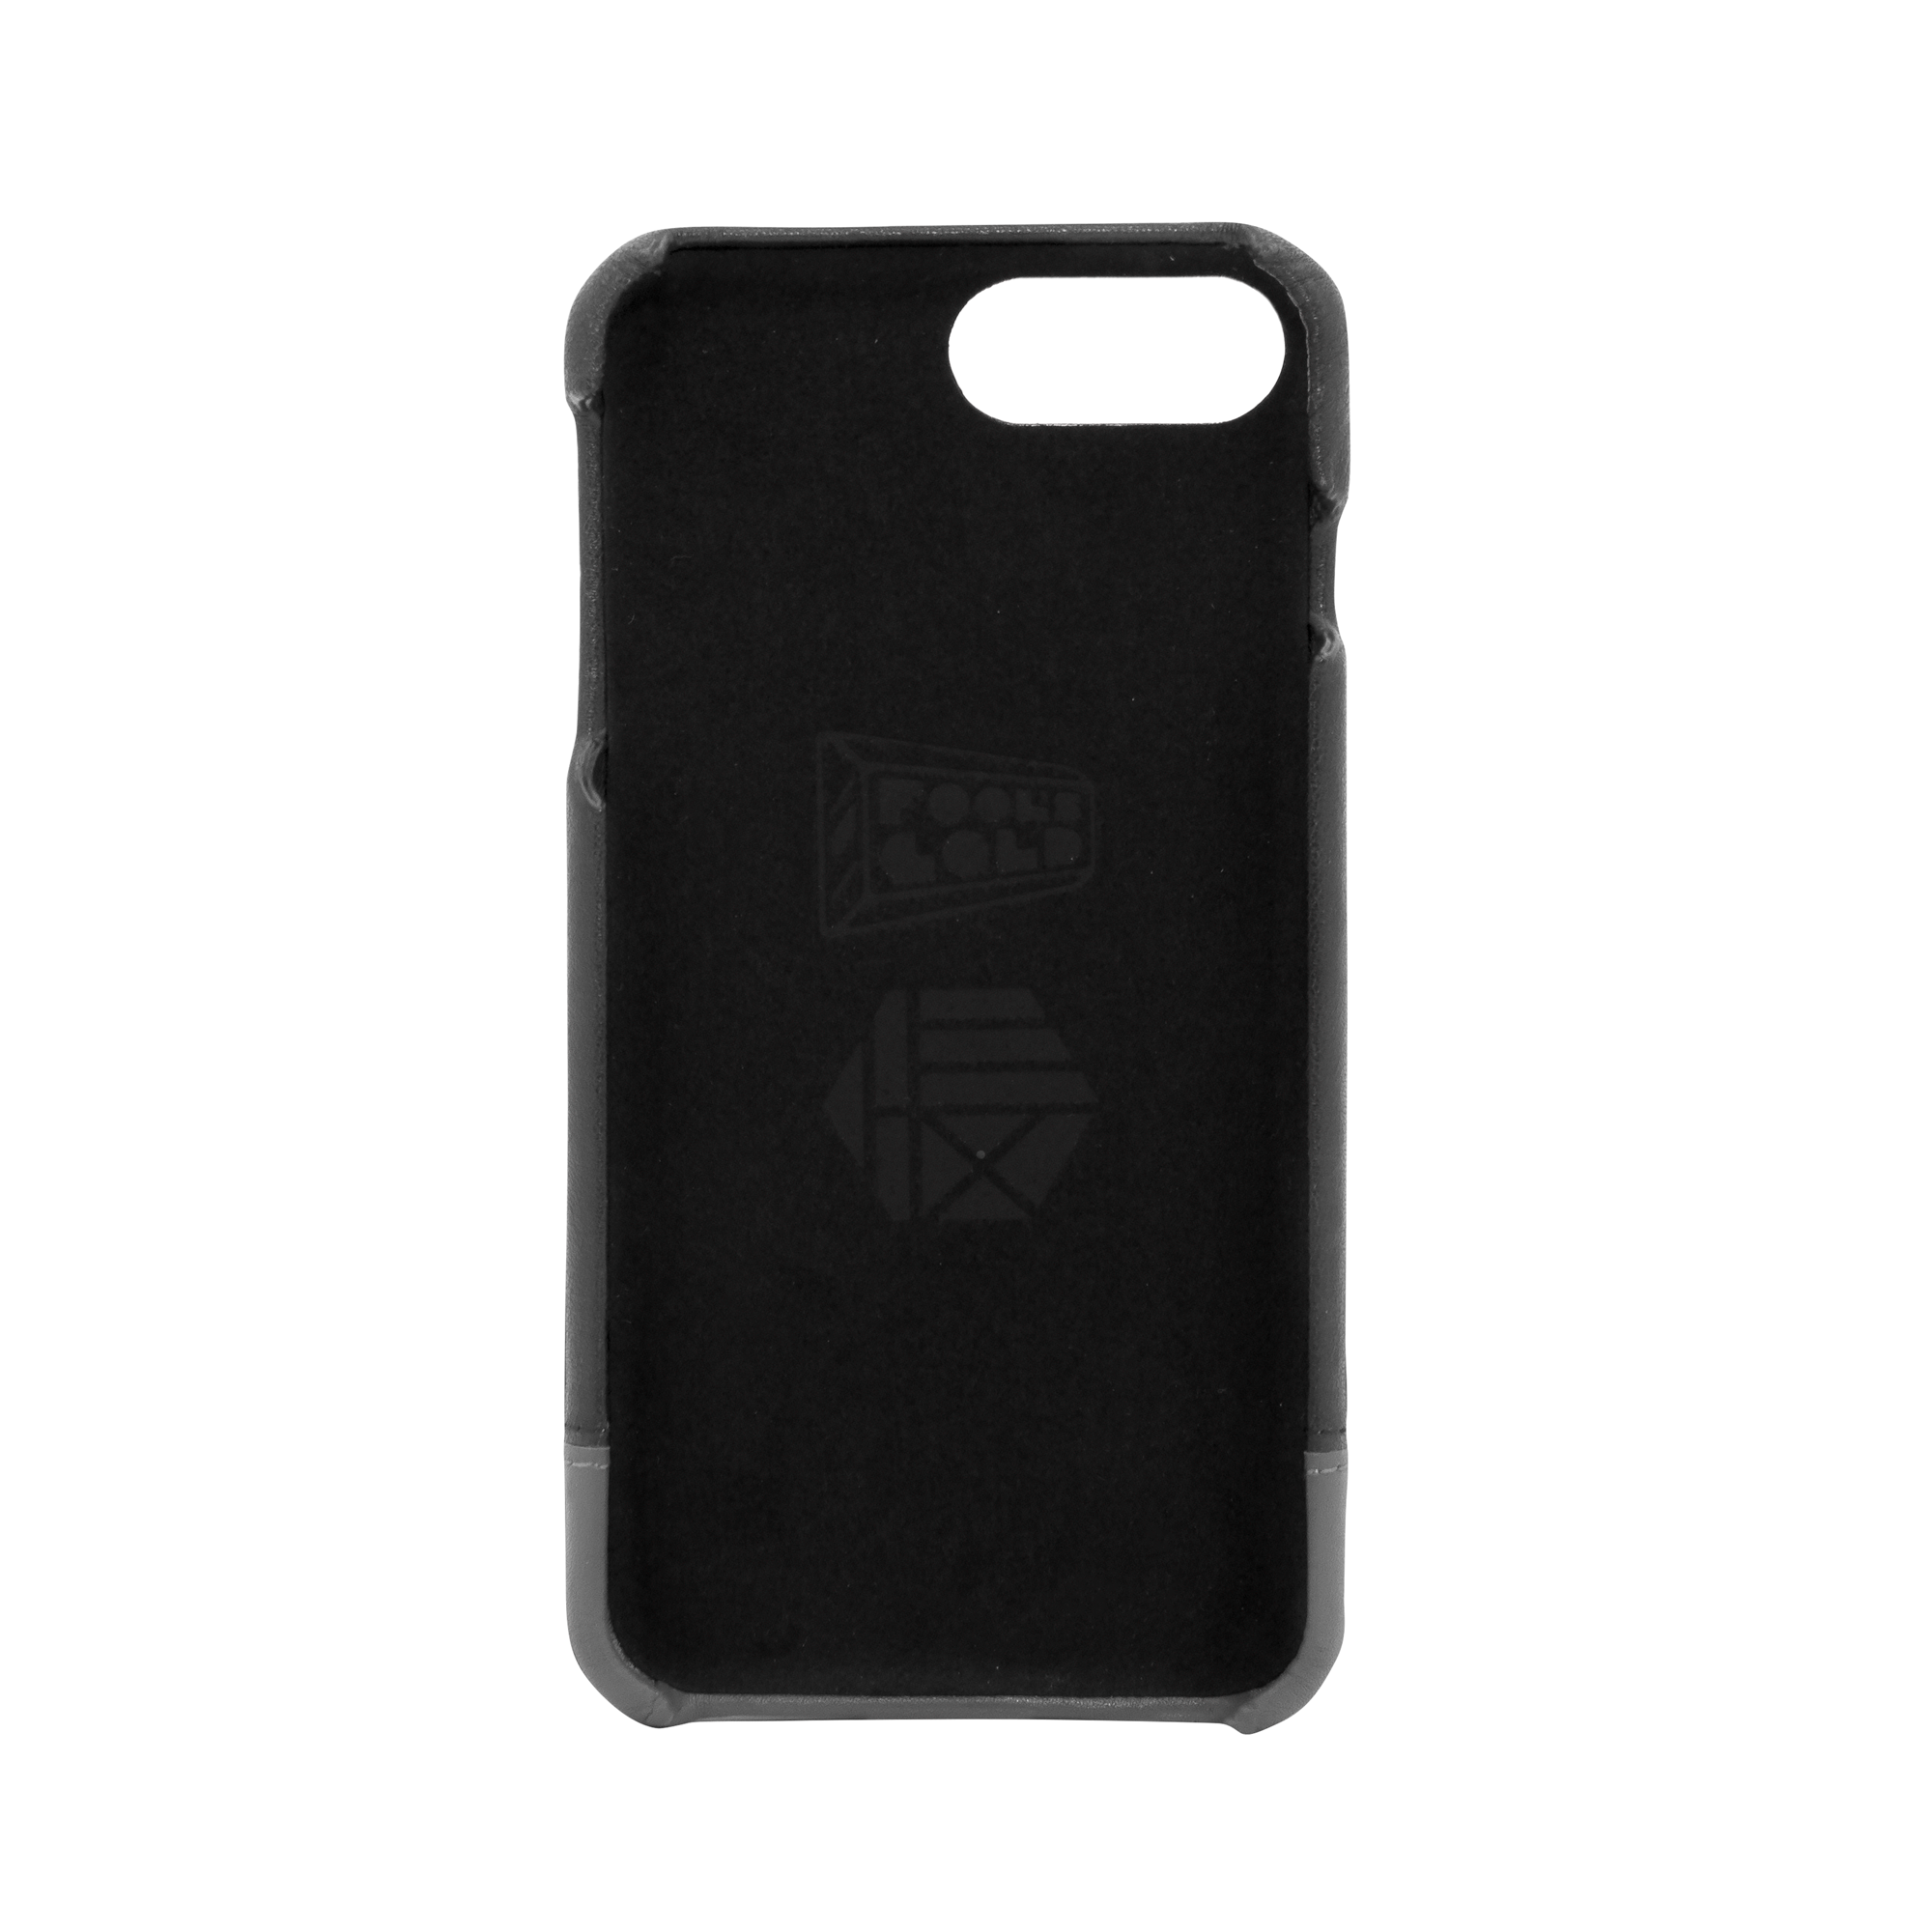 Fool's Gold x Hex iPhone 7 Case  - Black